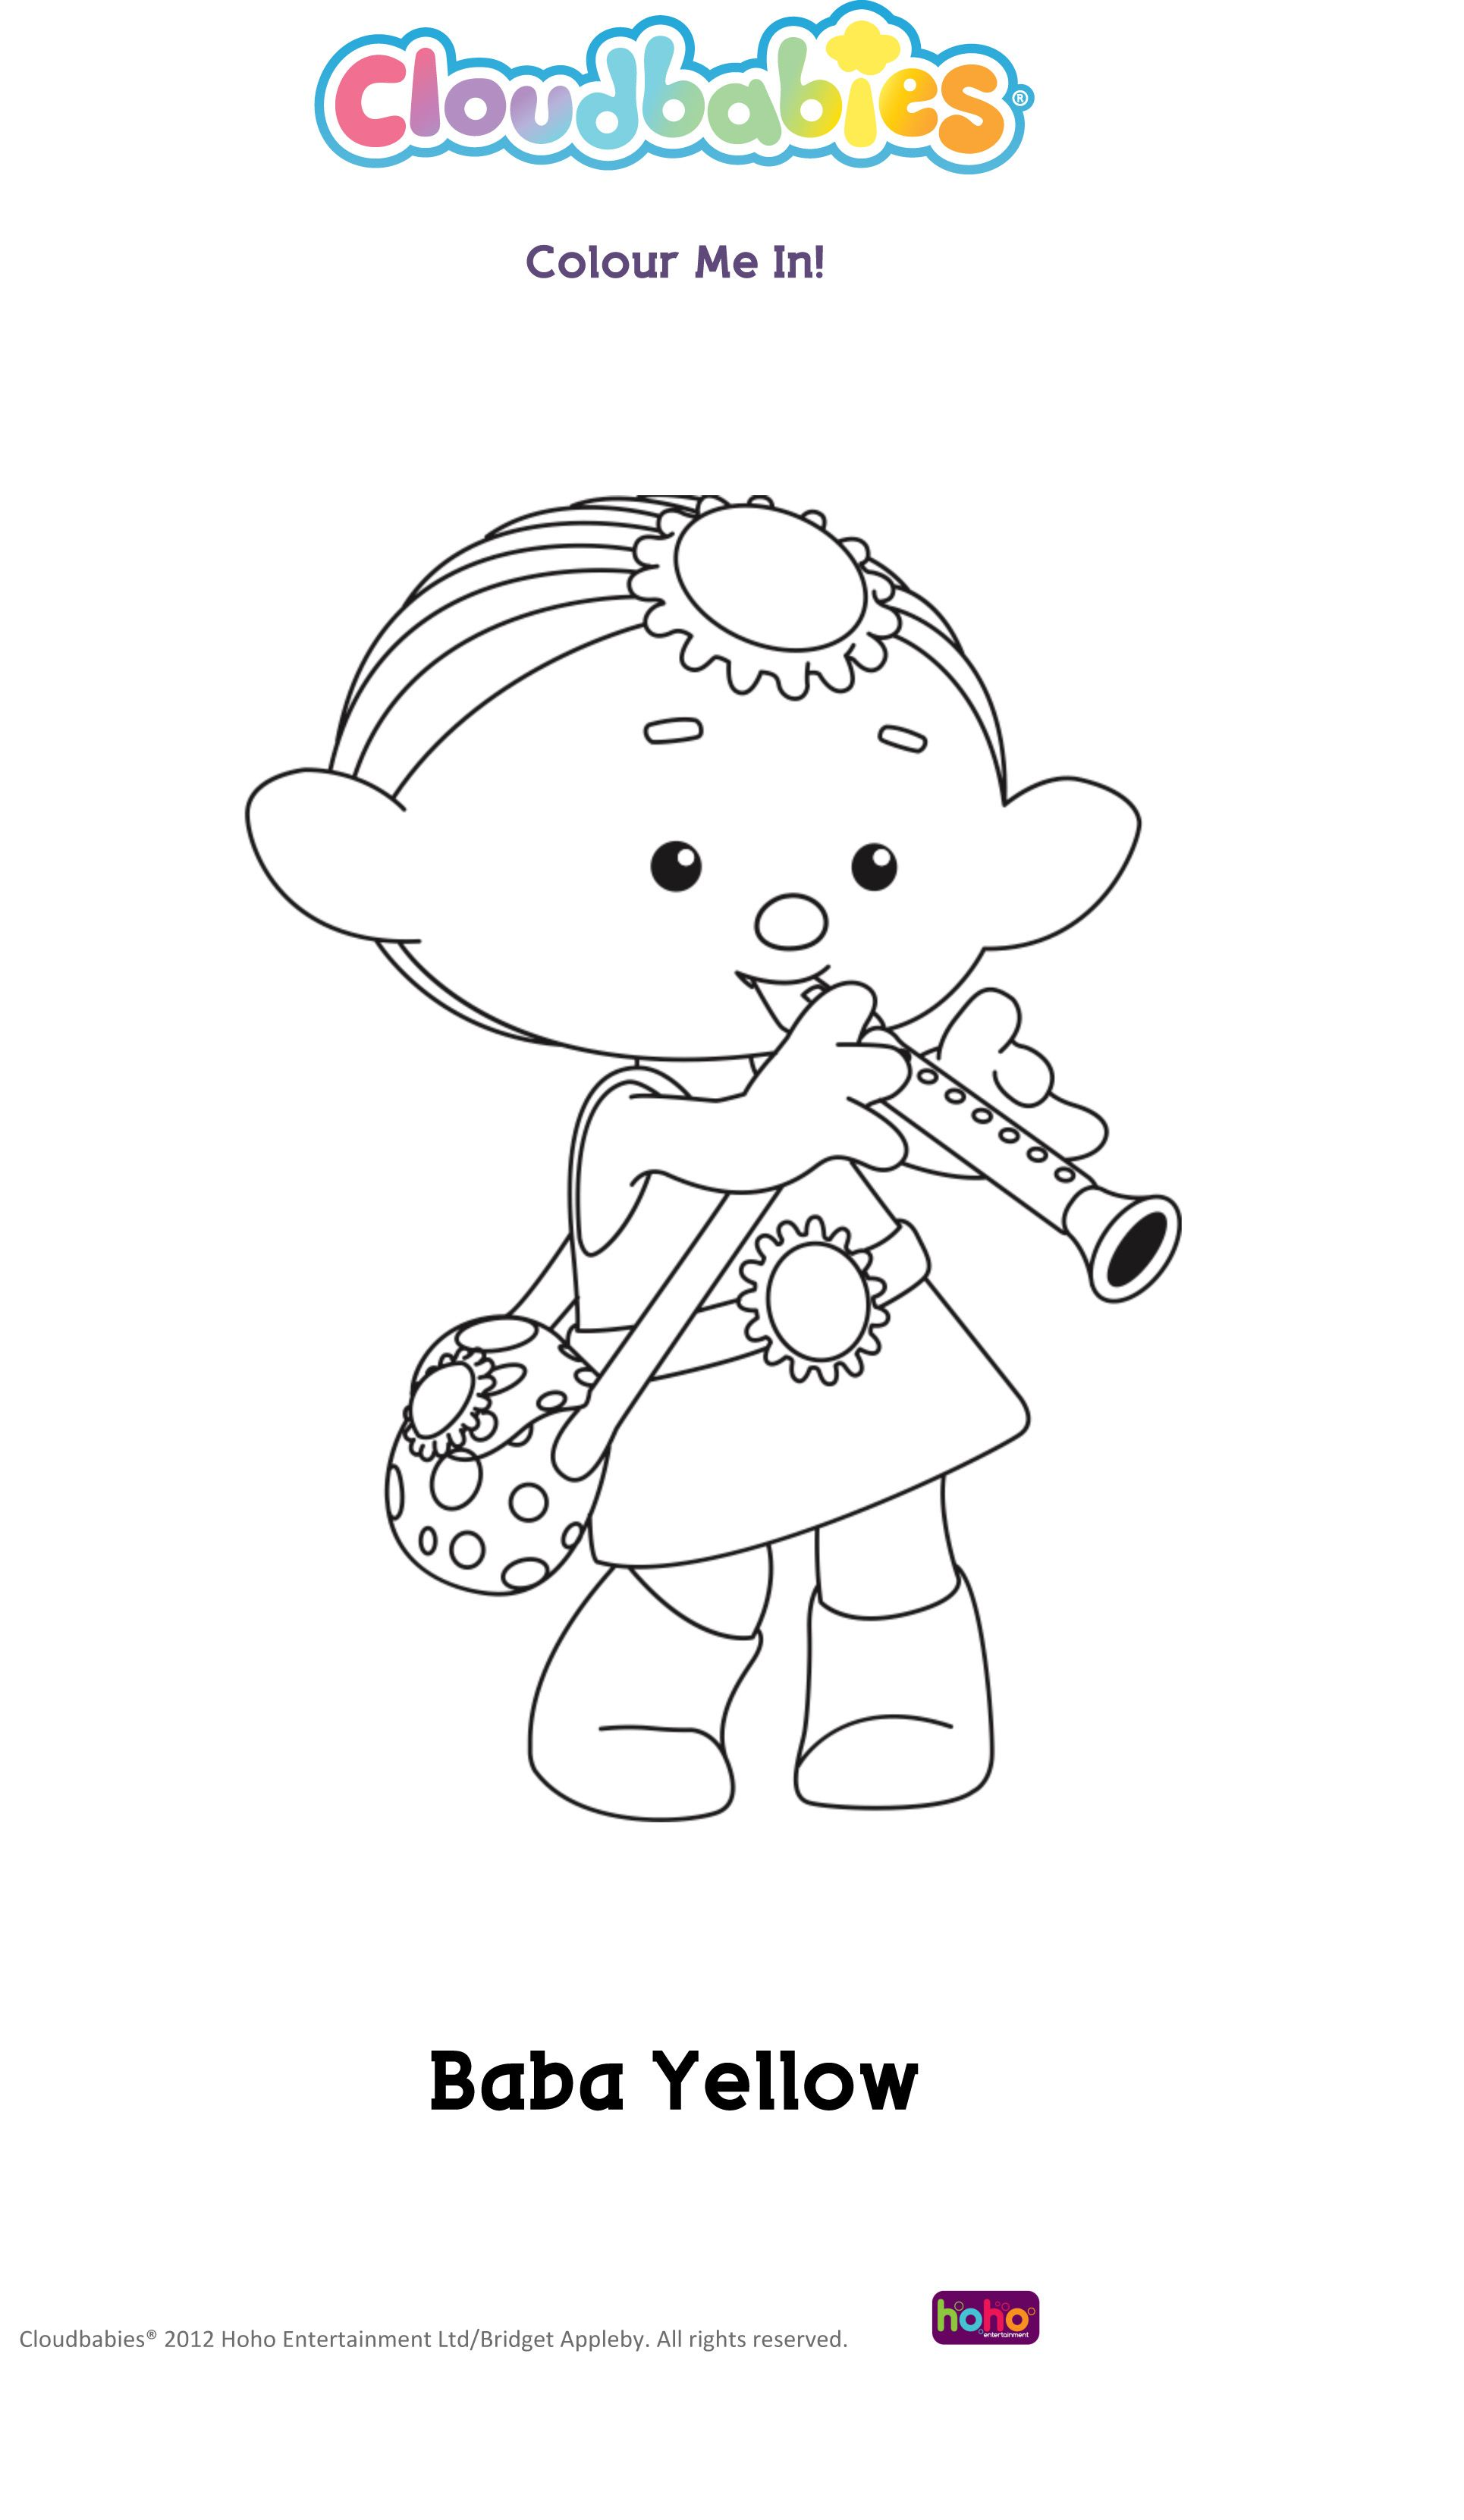 cloudbabies coloring pages for kids - photo#2